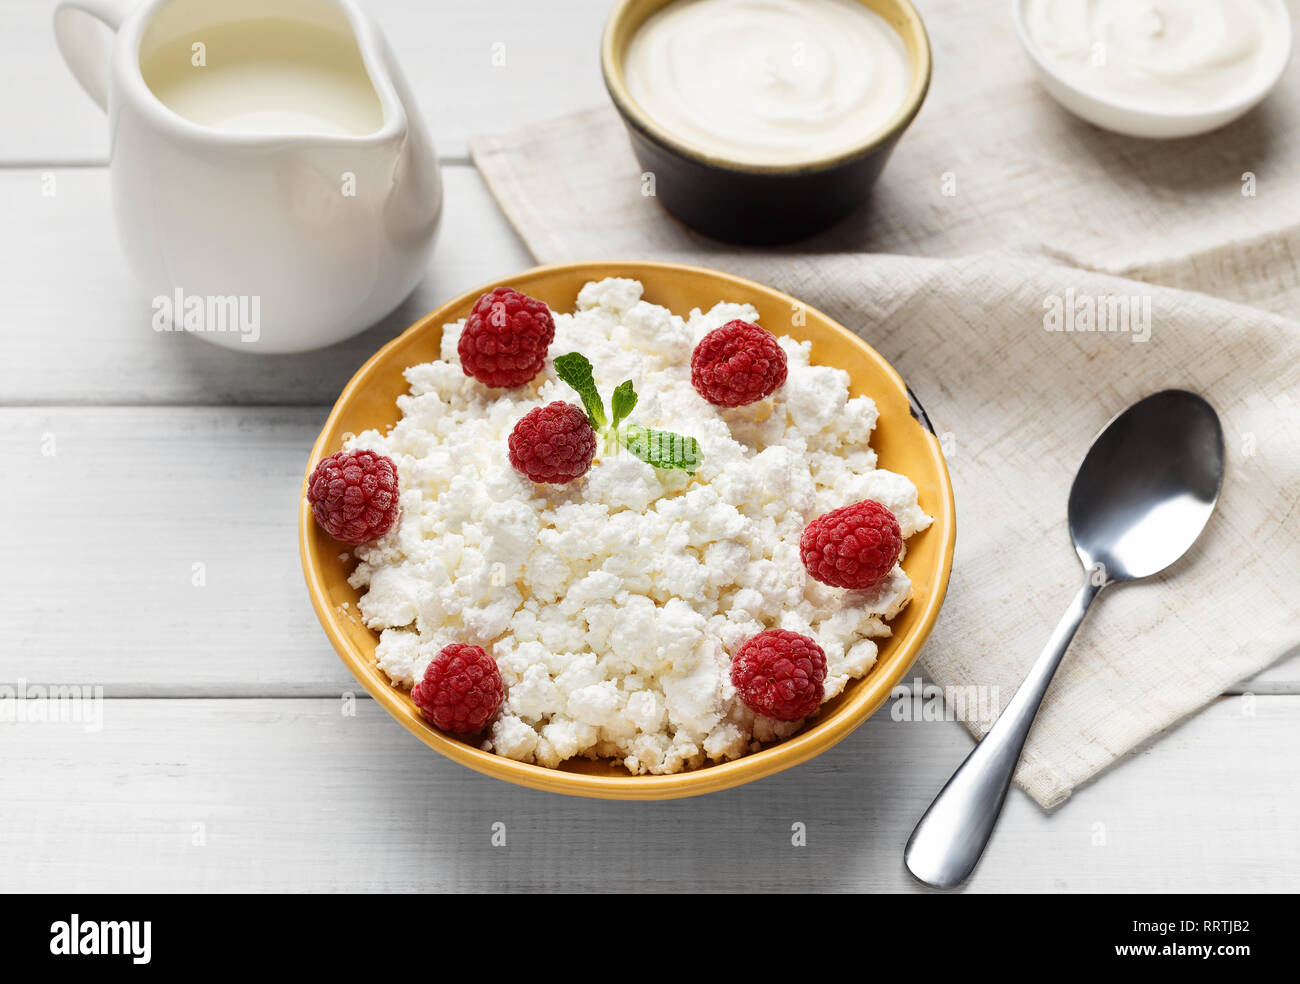 Milk products composition - Stock Image